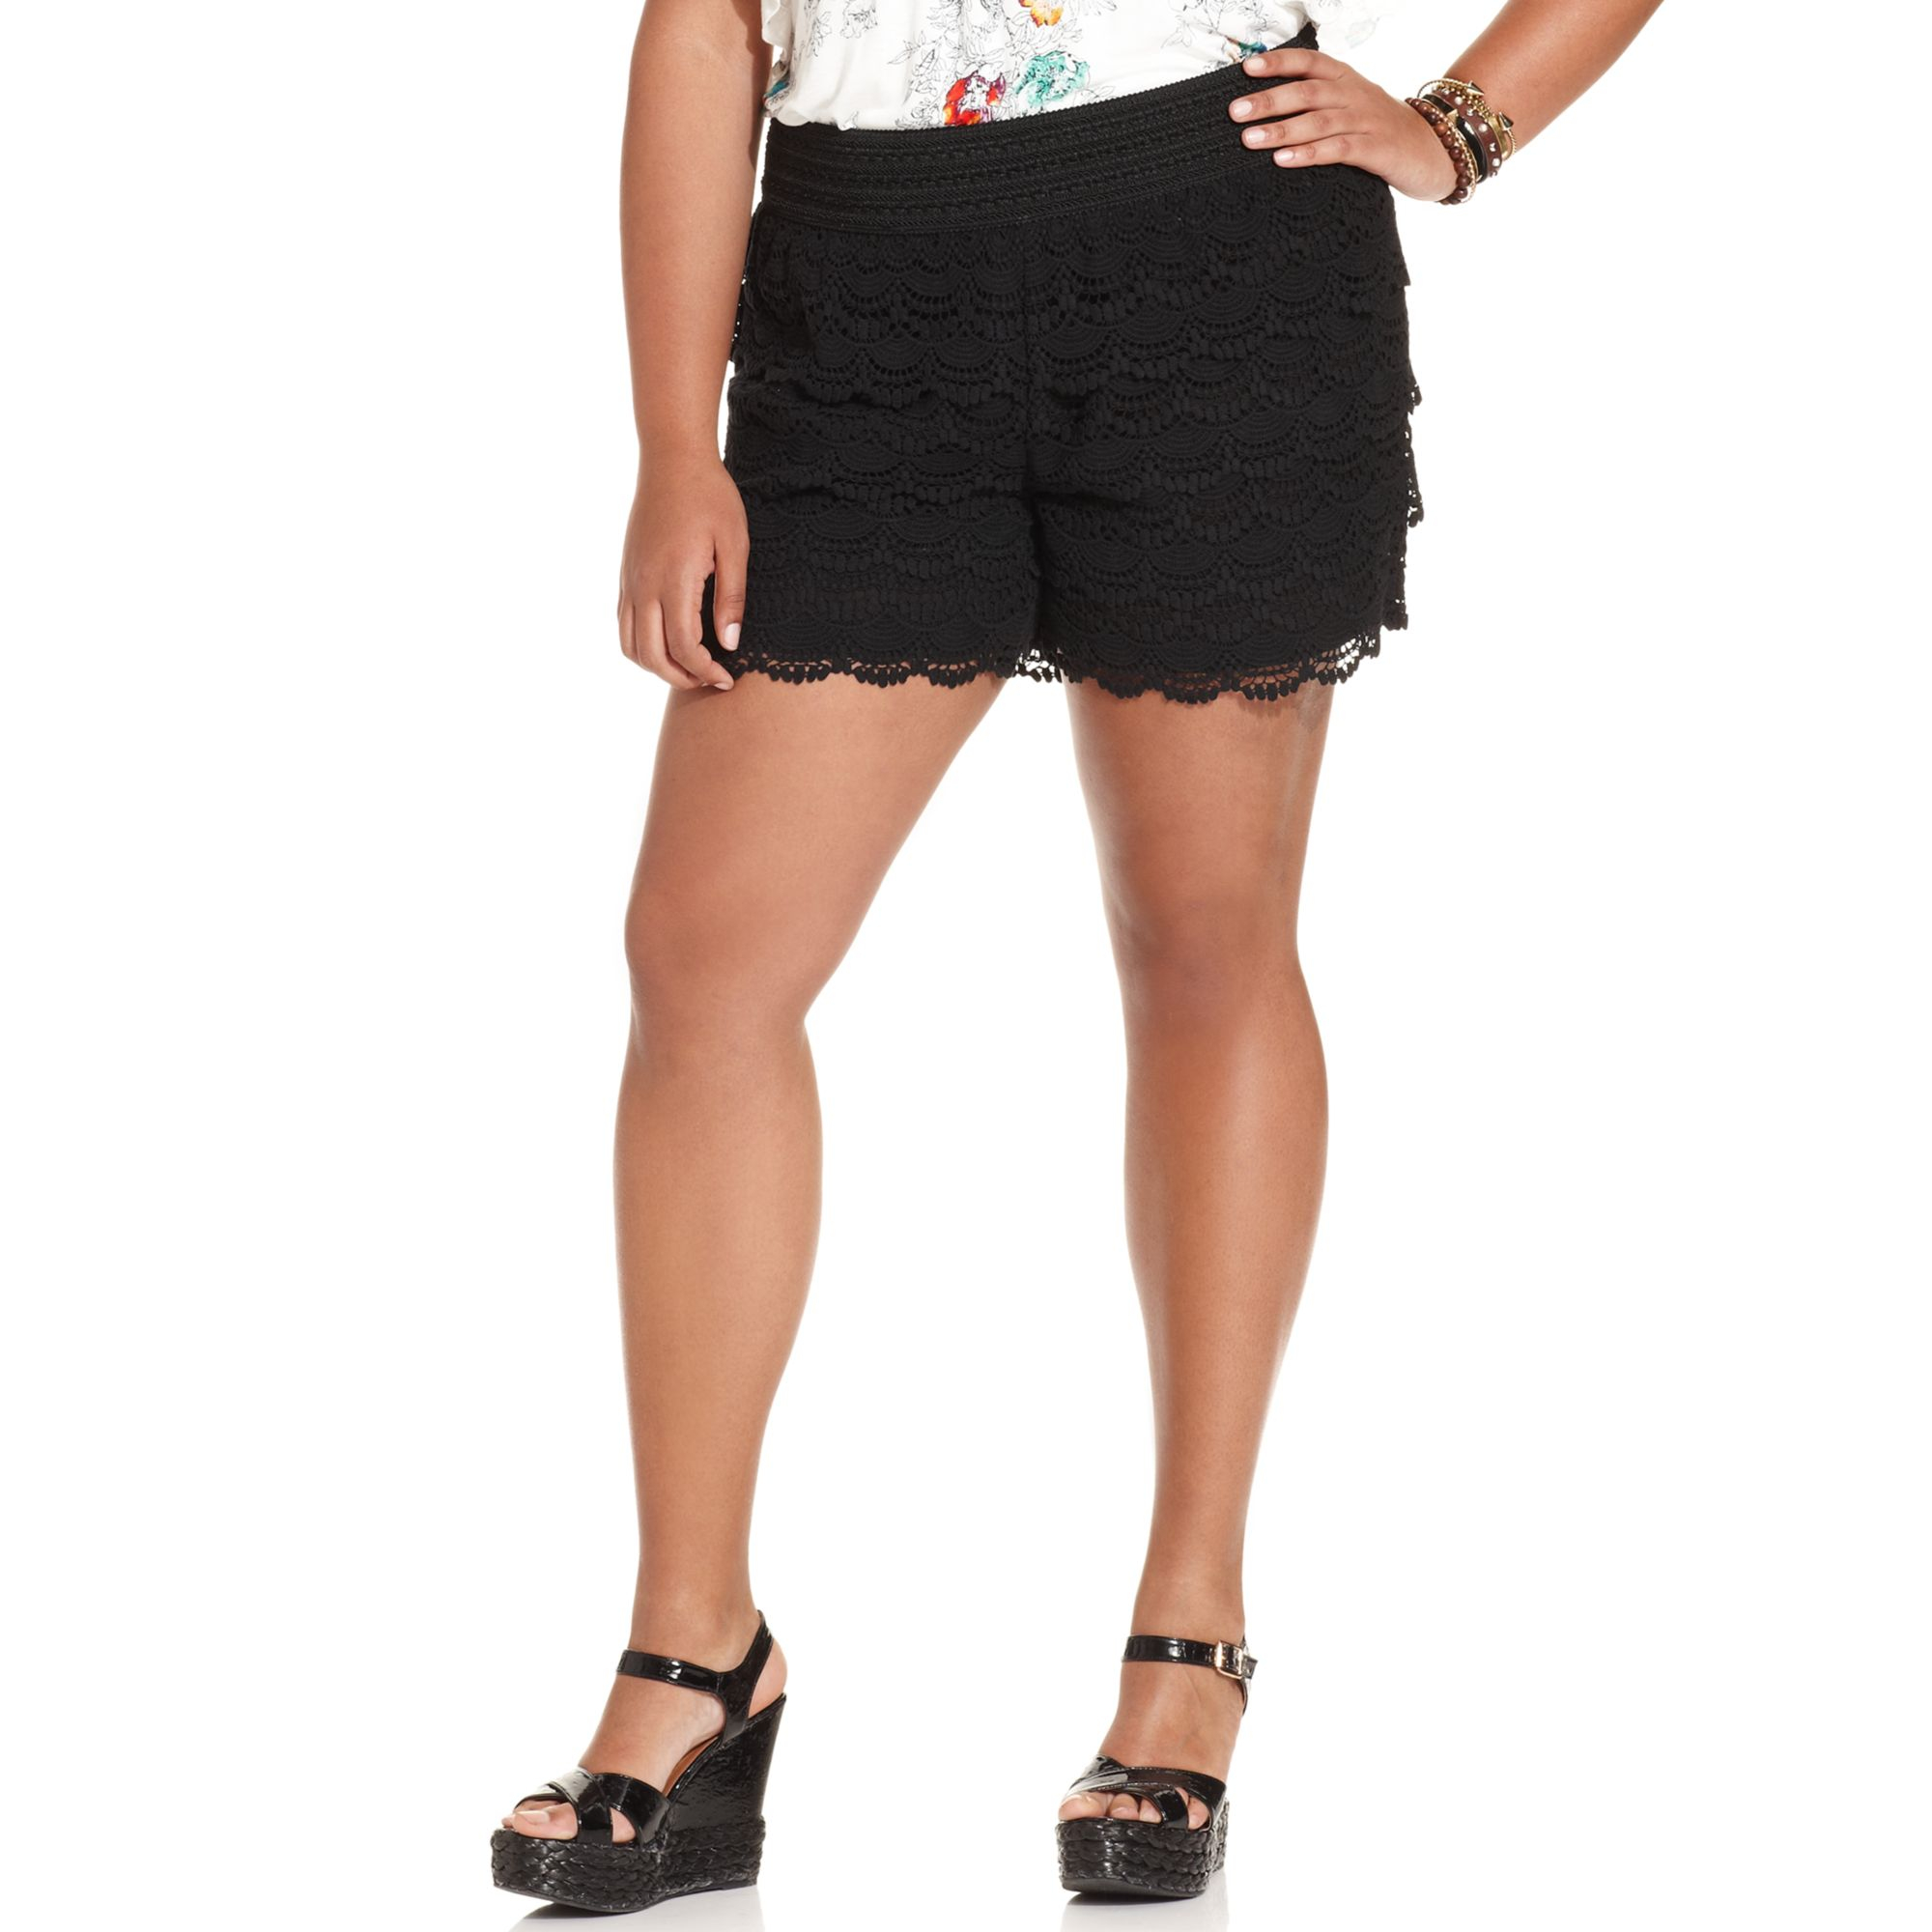 If you'd prefer a little extra length, plus size capris are a sleek and slim-fitting alternative to shorts. Black twill capris look chic with a simple, button-front top and a plus size jacket. Details like elastic waistbands and notched cuffs create a more comfortable fit.